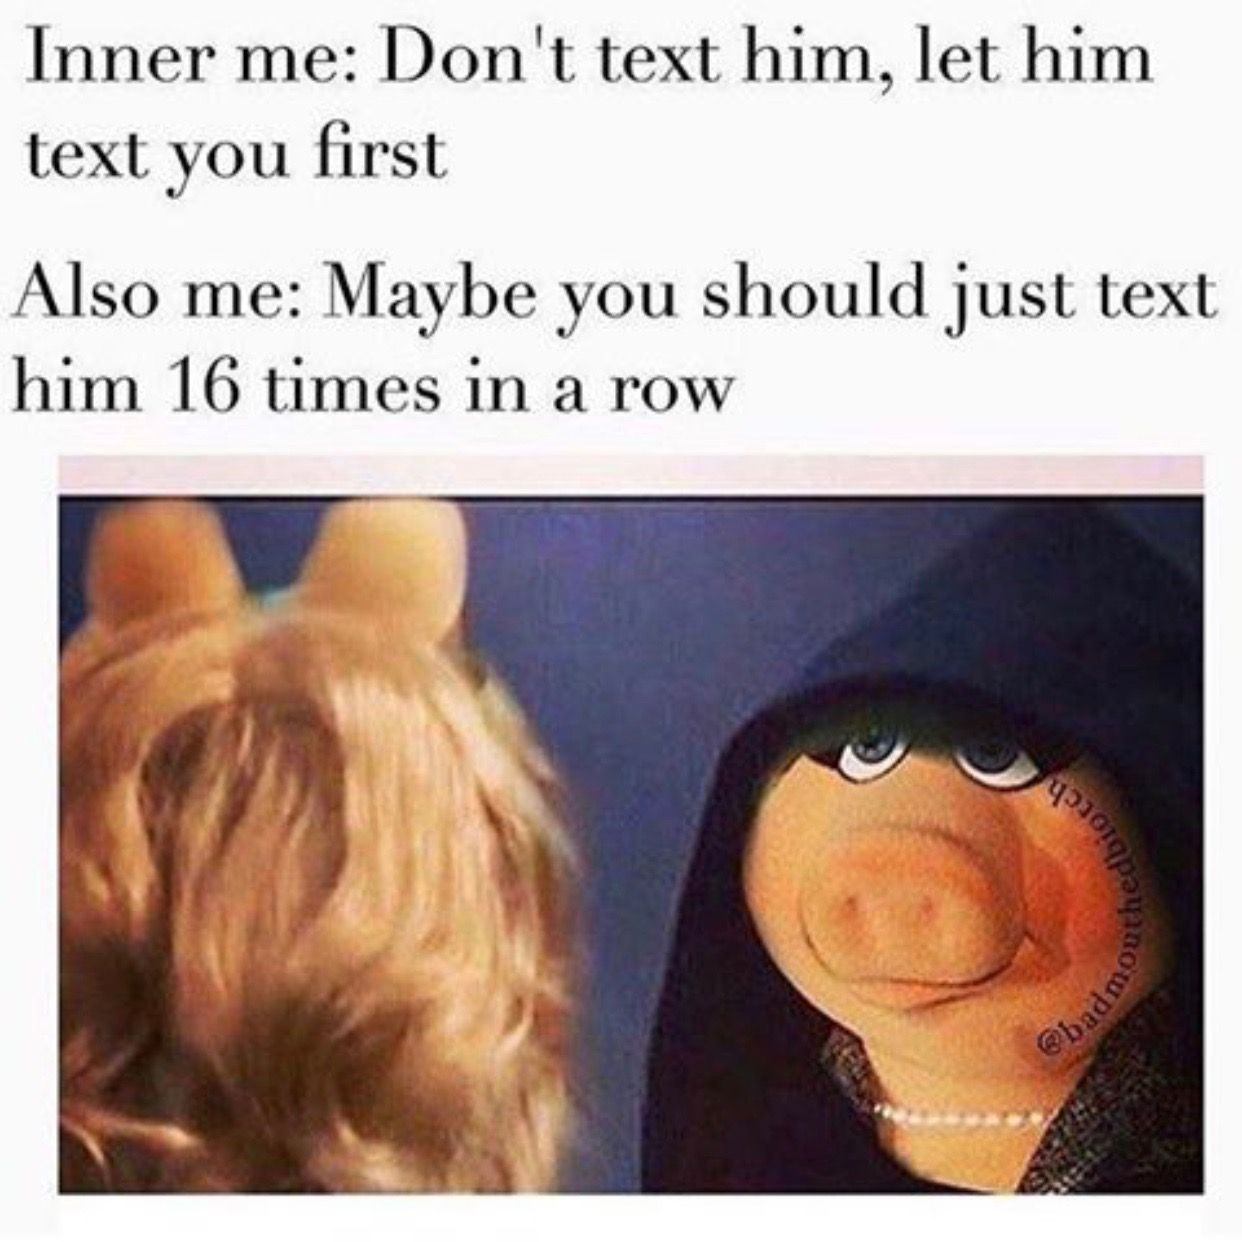 Pin By Mandy C On Lifestyle Dating And Romance Funny Christian Memes Beauty Memes Christian Memes